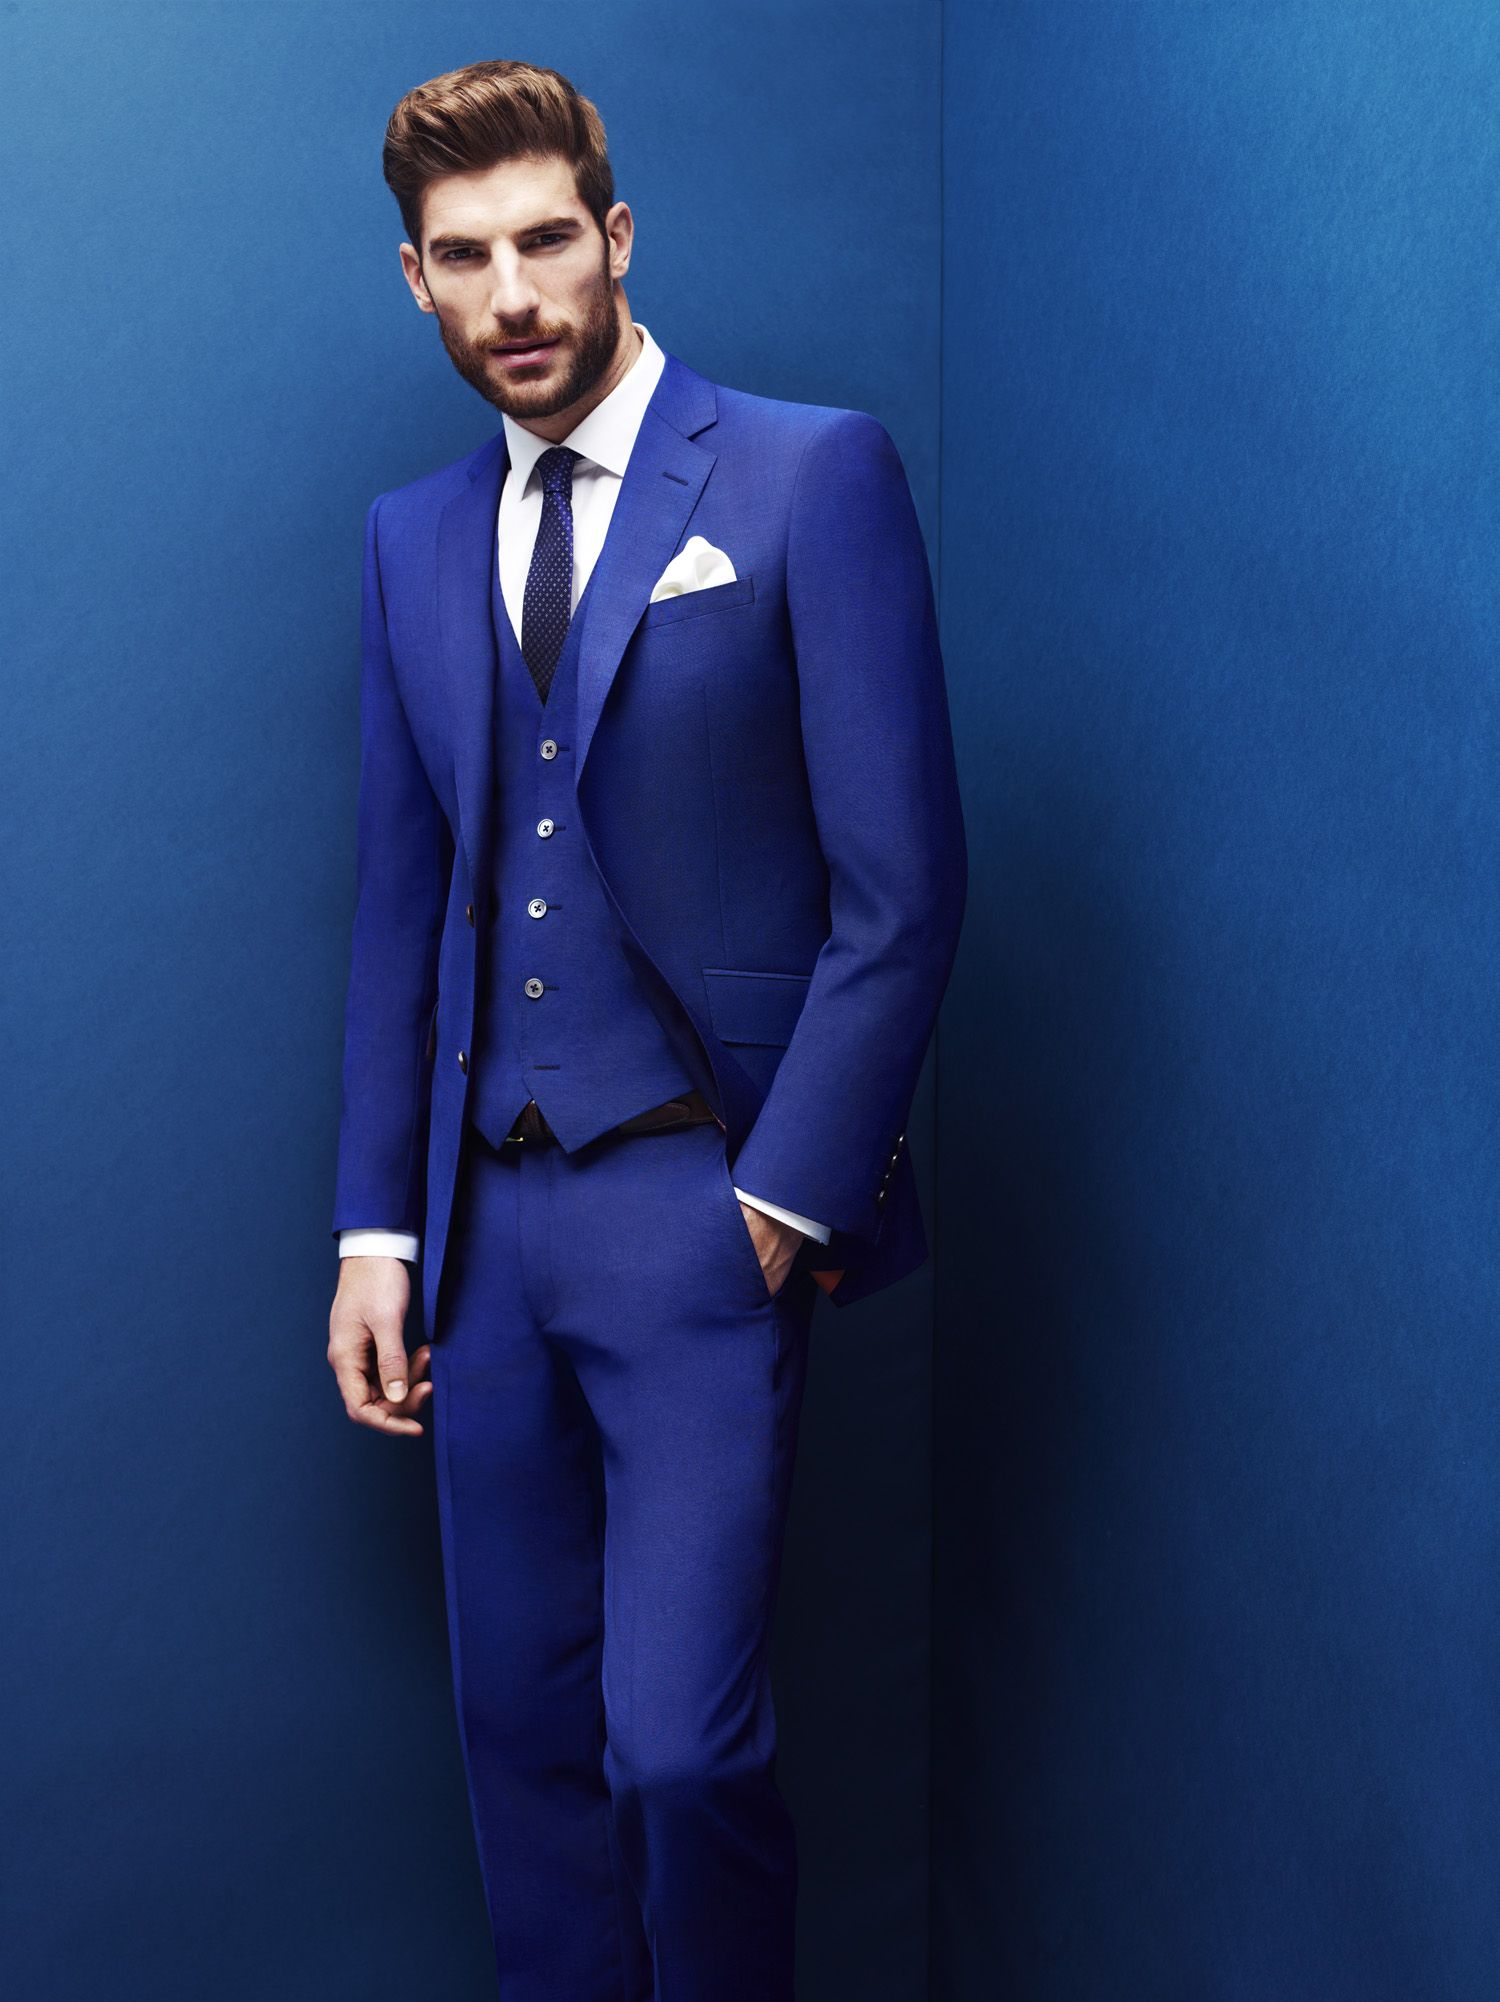 Plum tie and blue suit | Wedding Suits | Pinterest | Ties, Blue ...